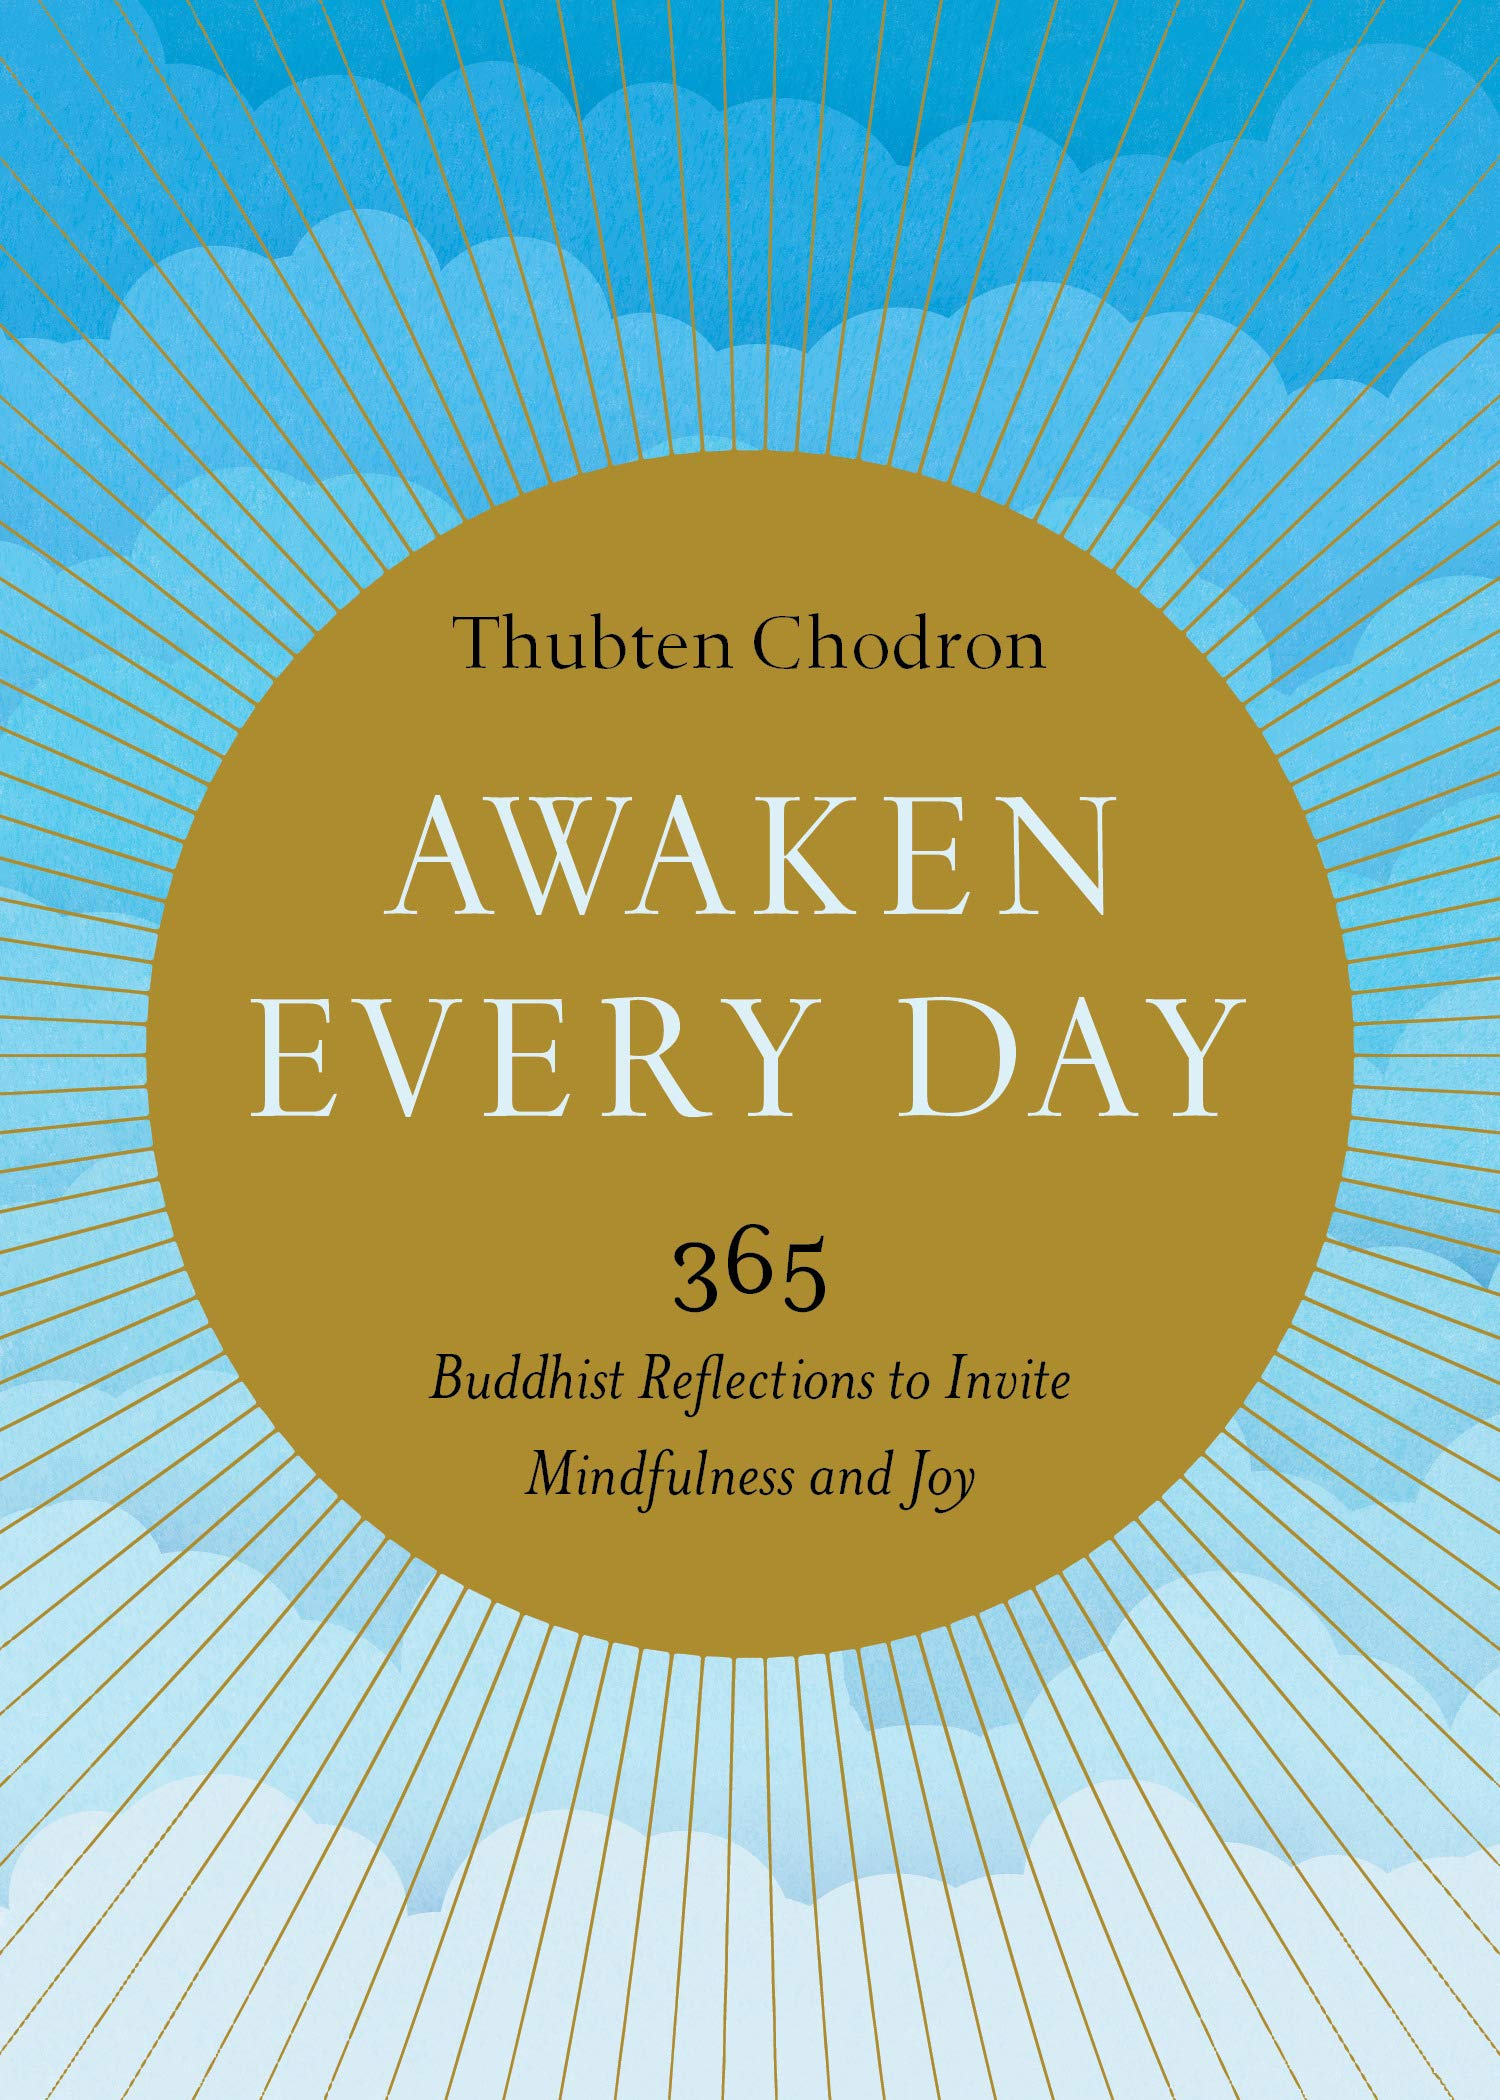 Awaken Every Day: 365 Buddhist Reflections to Invite Mindfulness and Joy